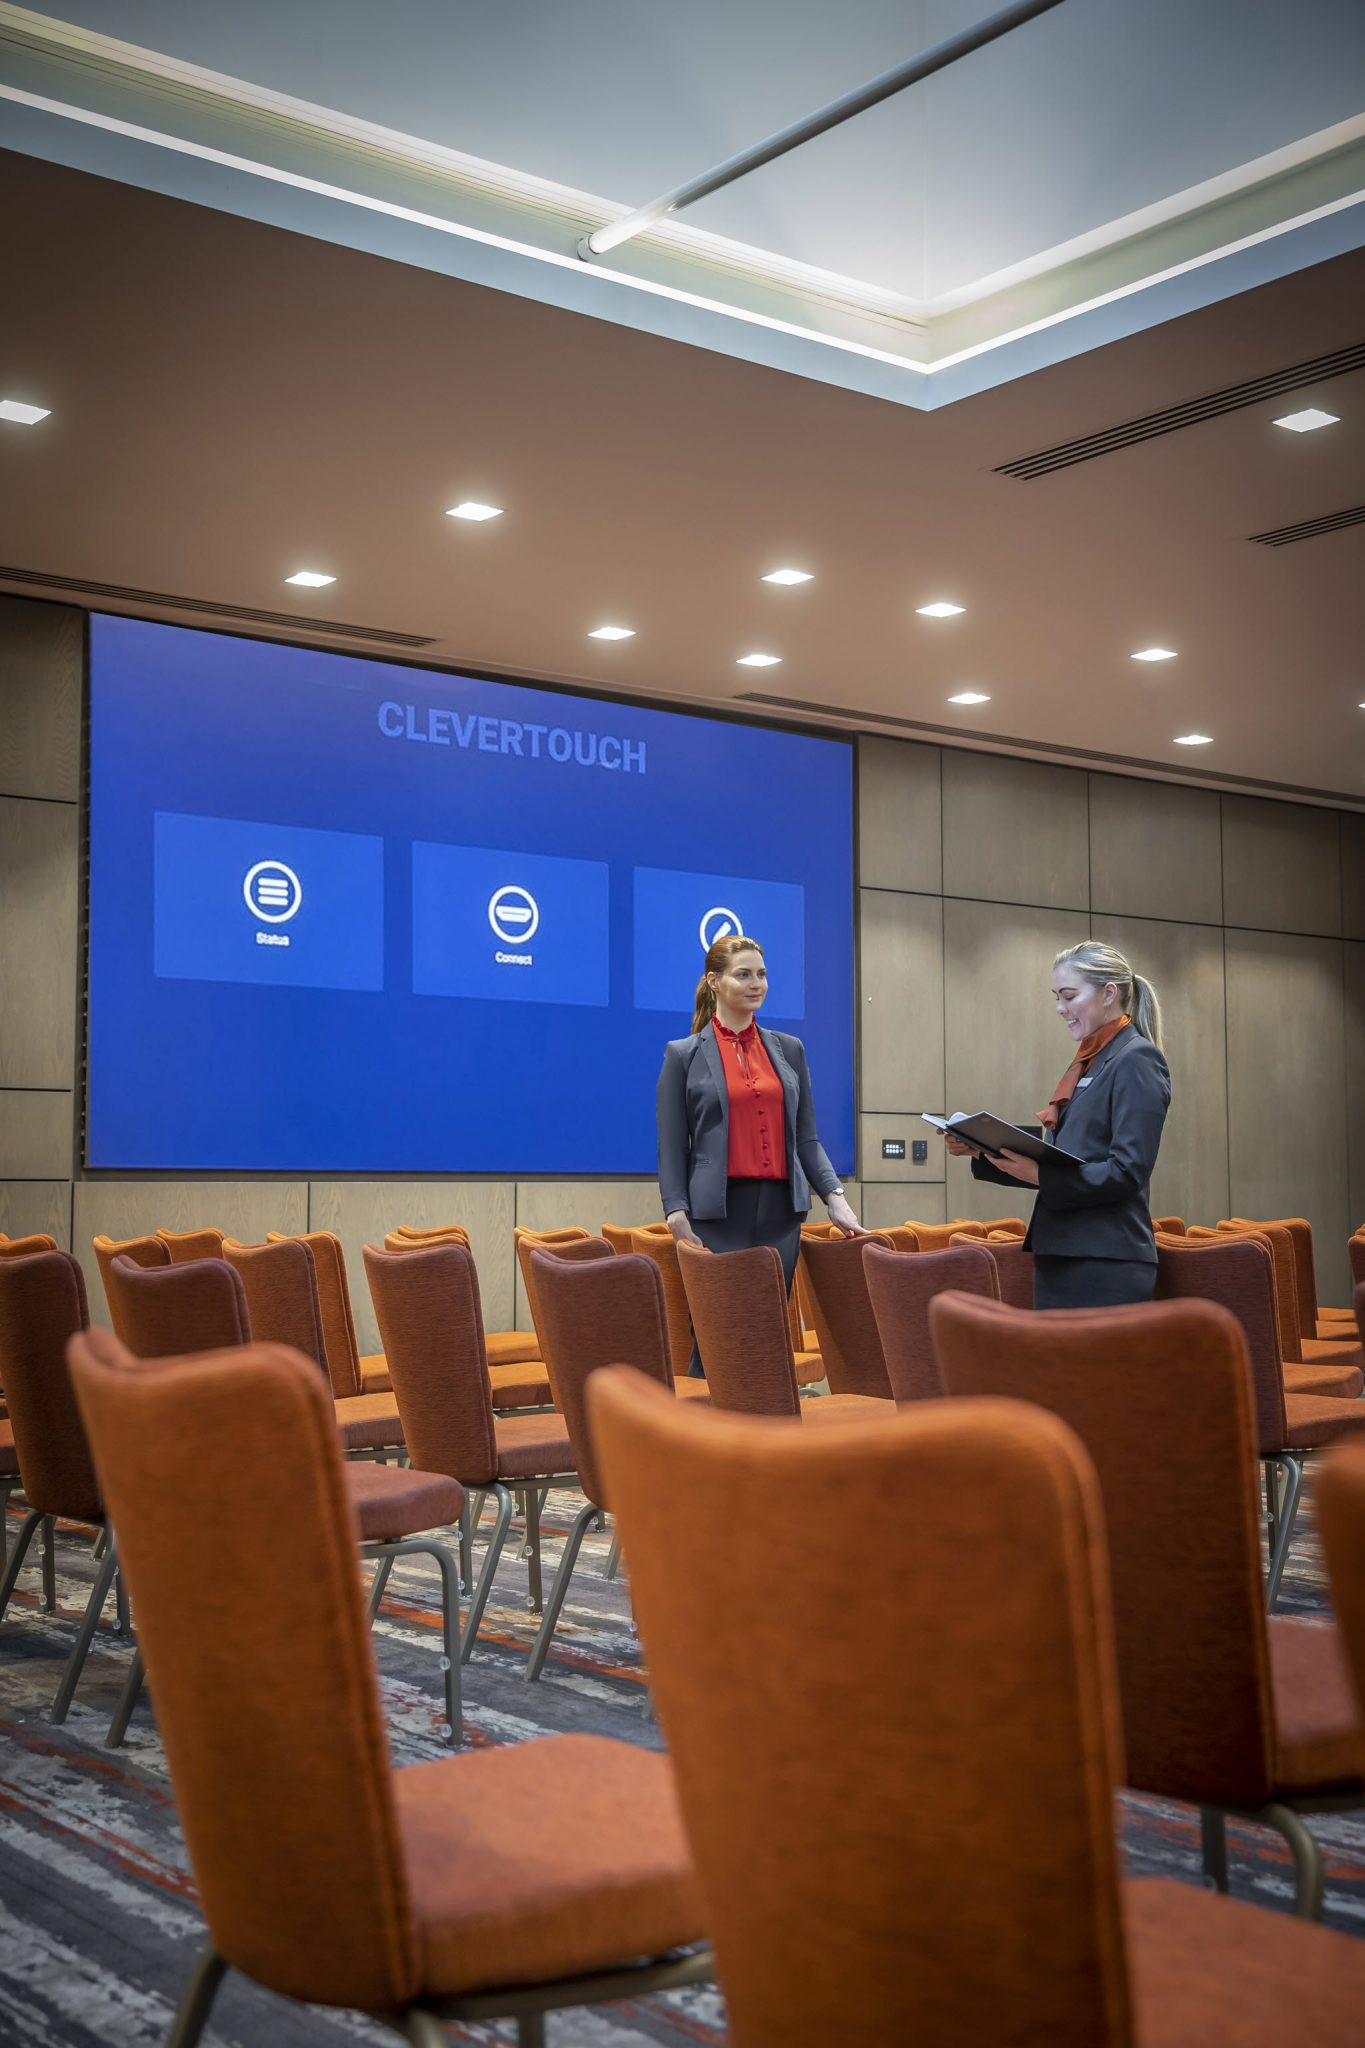 Grand Canal Suite Theatre Set up & Clevertouch Technology -Clayton Cardiff Lane Conference Dublin